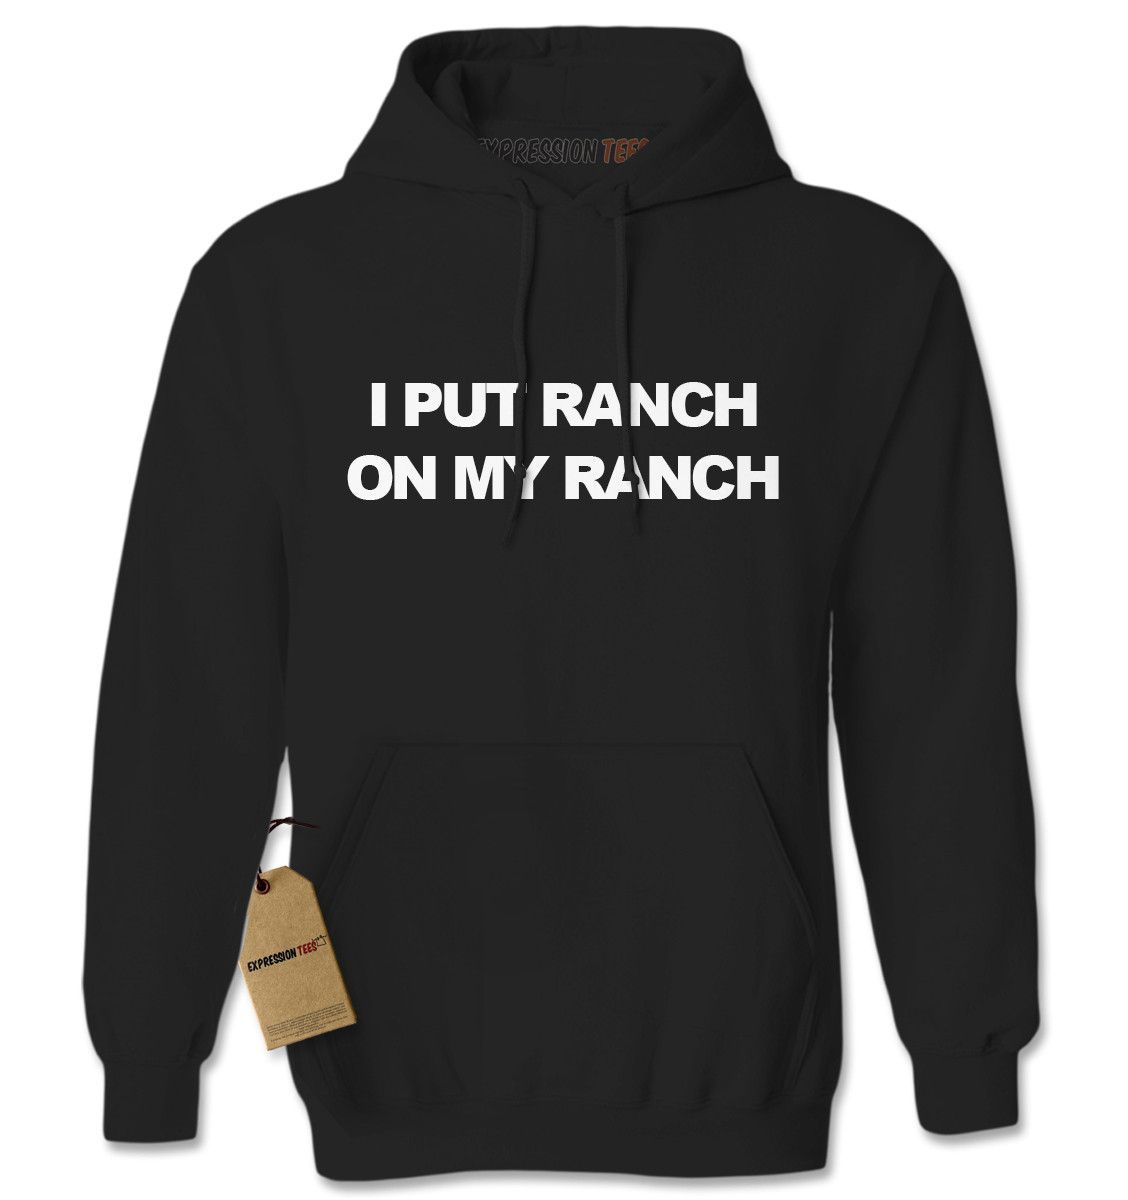 I Put Ranch On My Ranch Adult Hoodie Sweatshirt